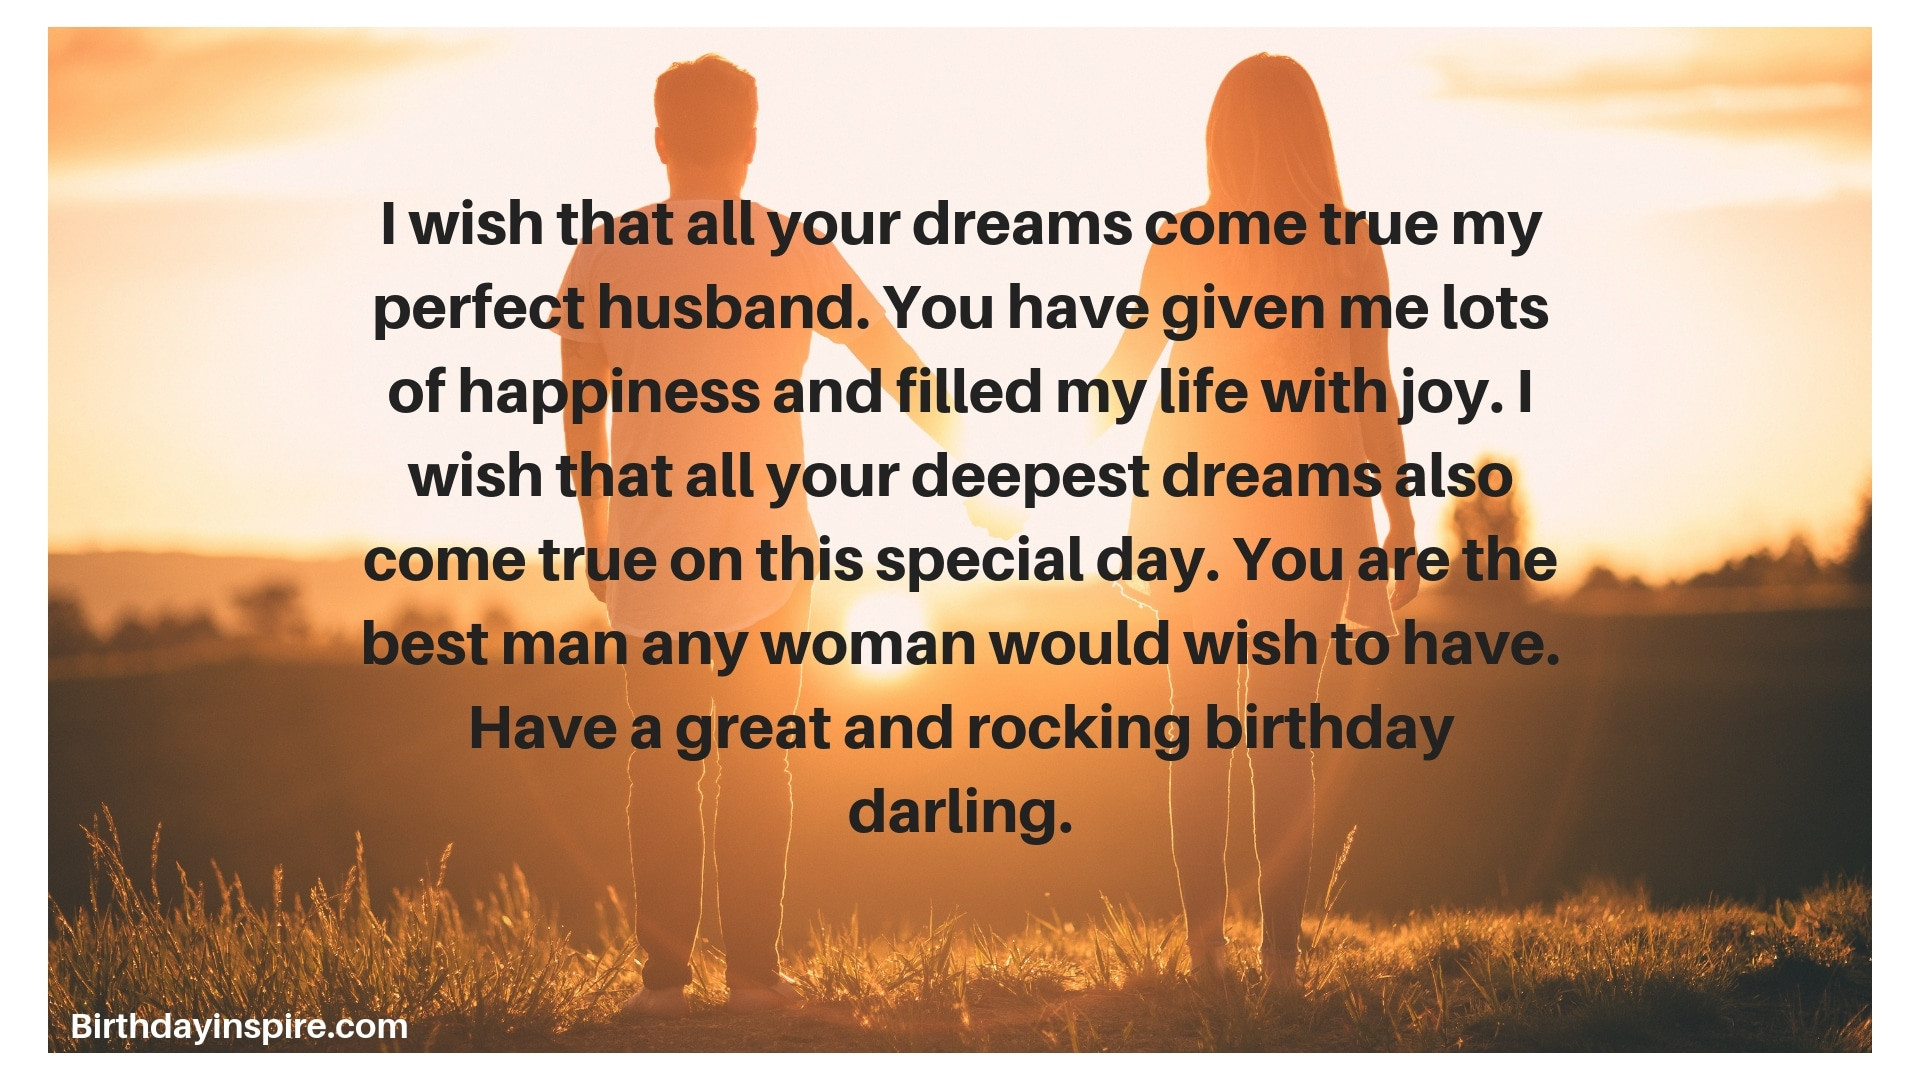 Best Birthday Wishes For Husband  53 Perfect Birthday Wishes for Husband Birthday Inspire